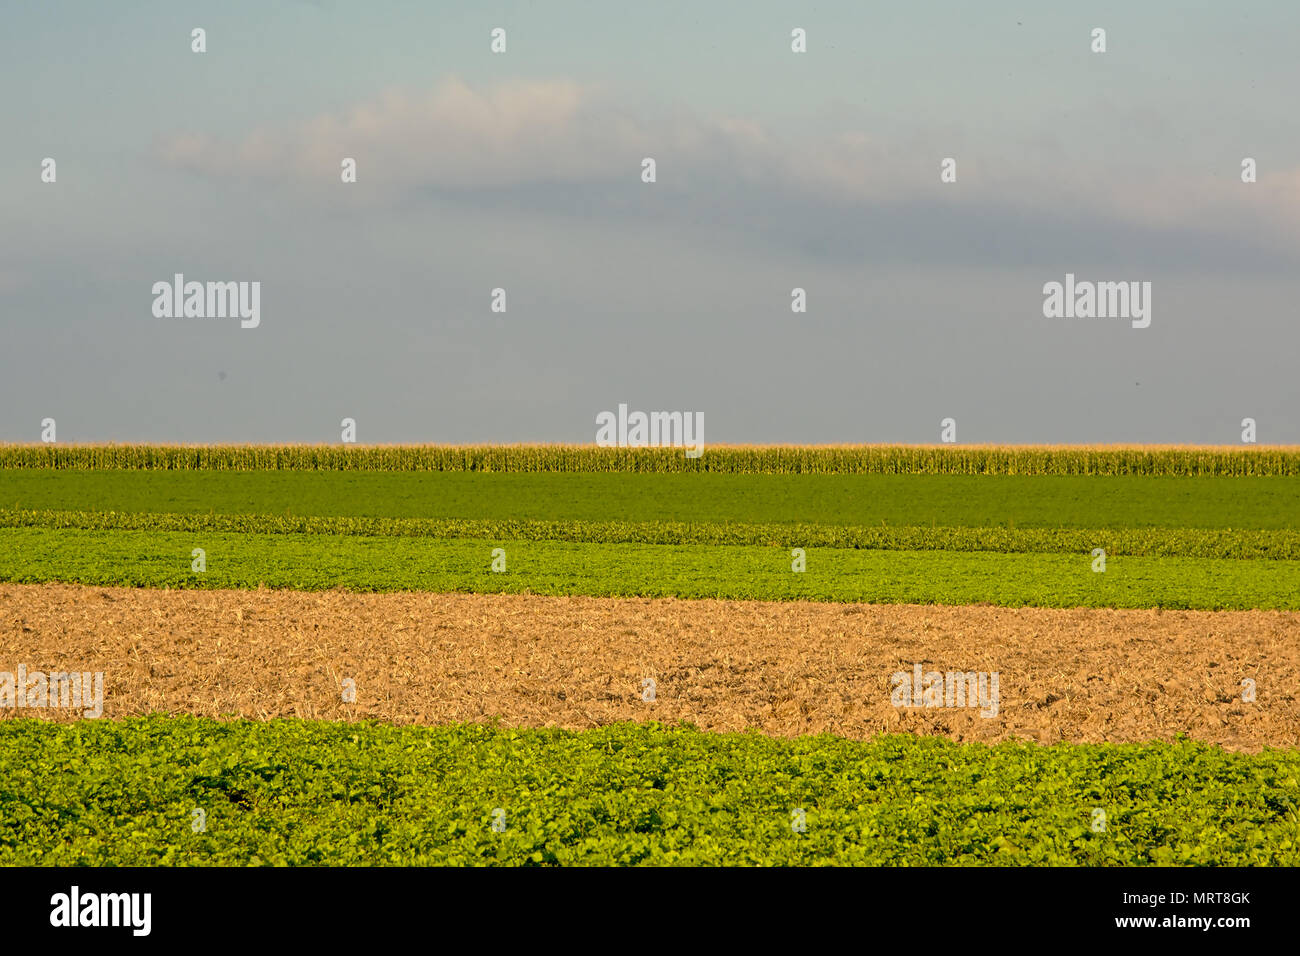 Green, brown and yellow layers of farmland under a cloudy sky in Flanders - Stock Image